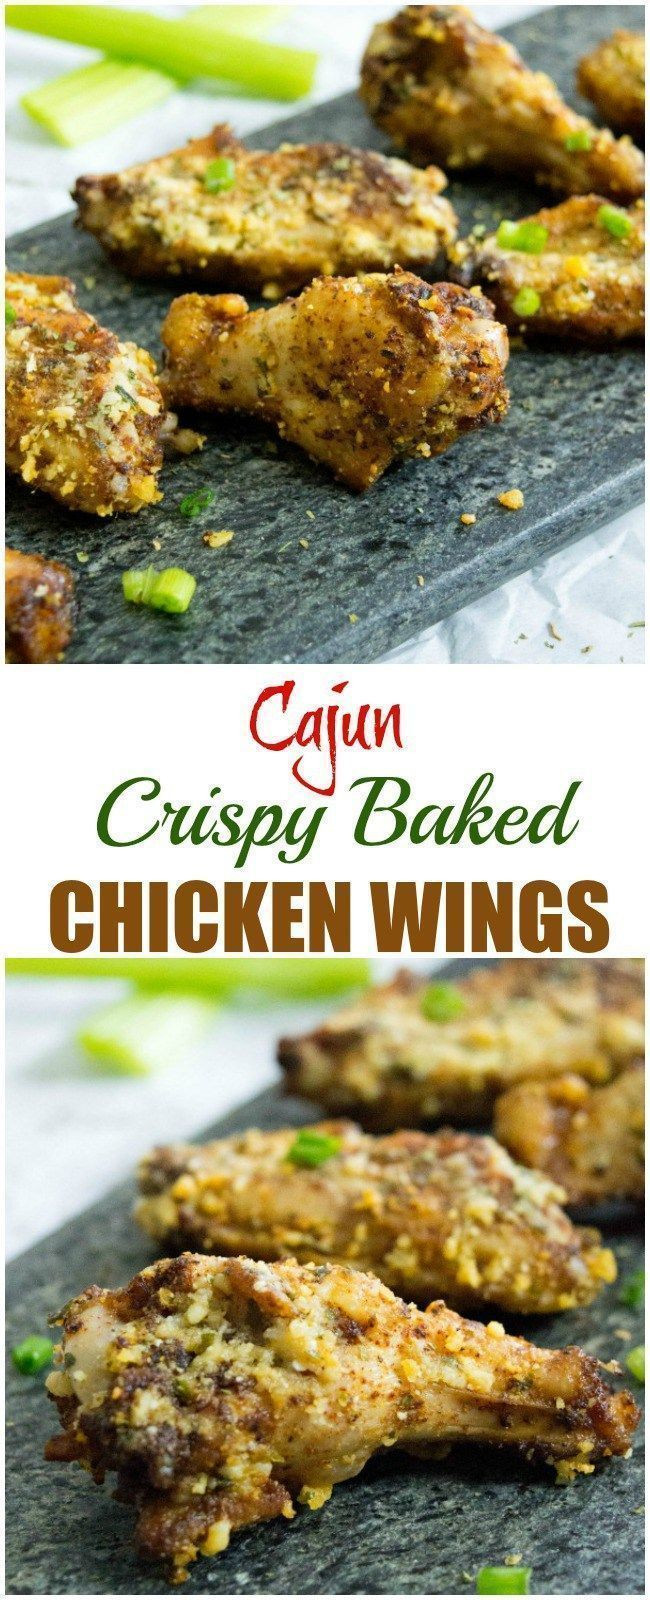 Are Baked Chicken Wings Healthy  1286 best images about All Kind of Foods and Recipes on